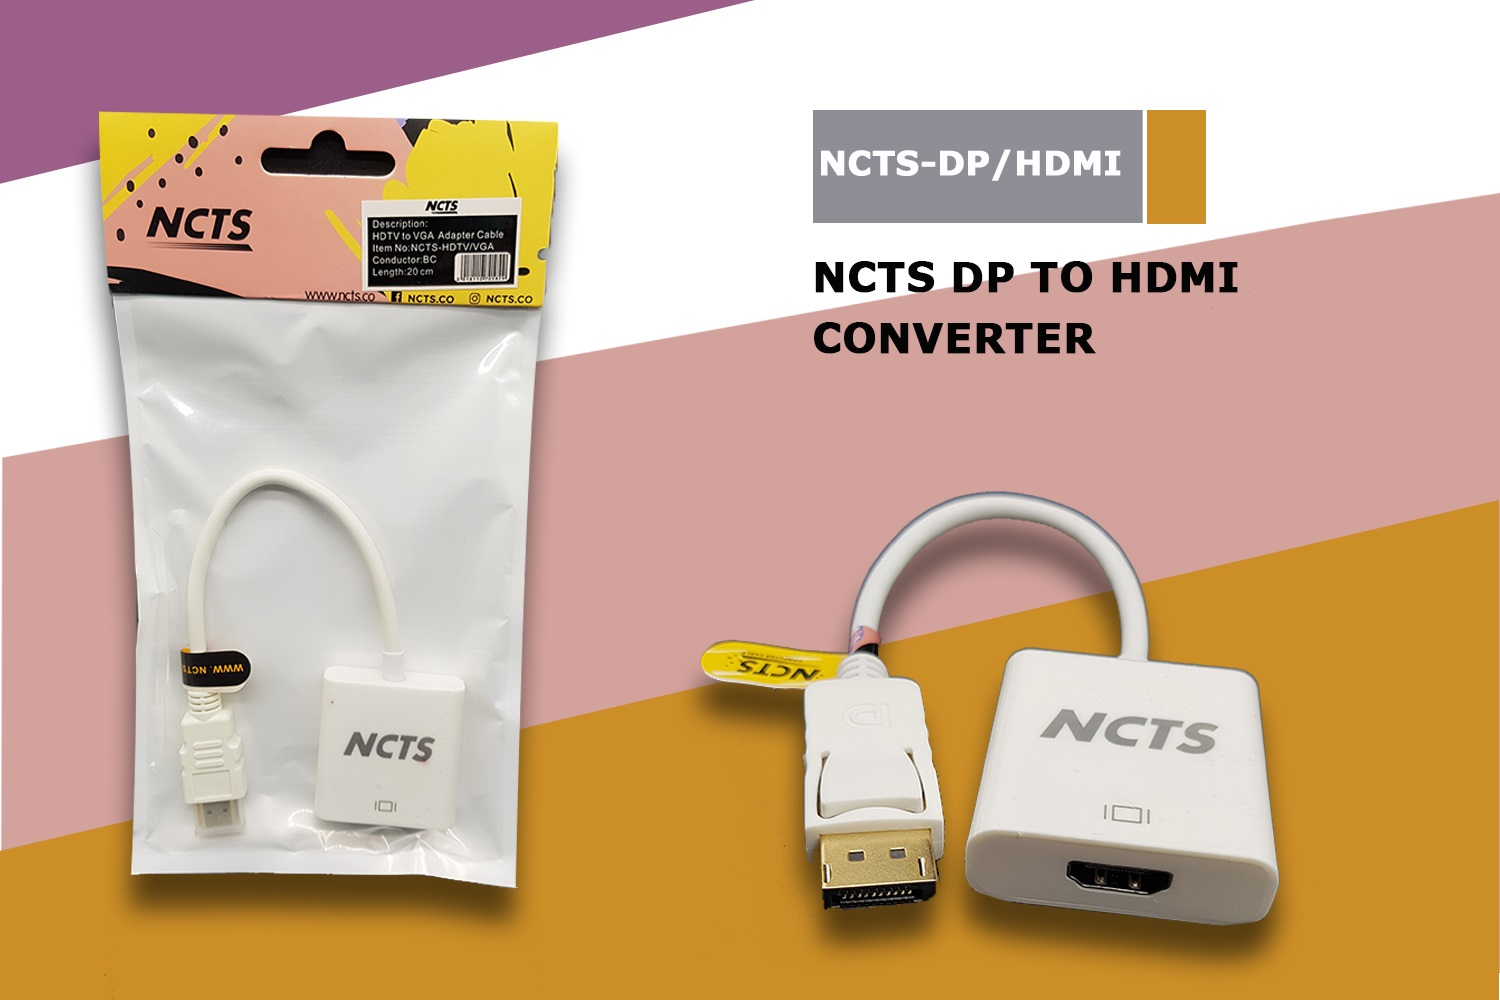 NCTS DISPLAY TO HDMI PORT